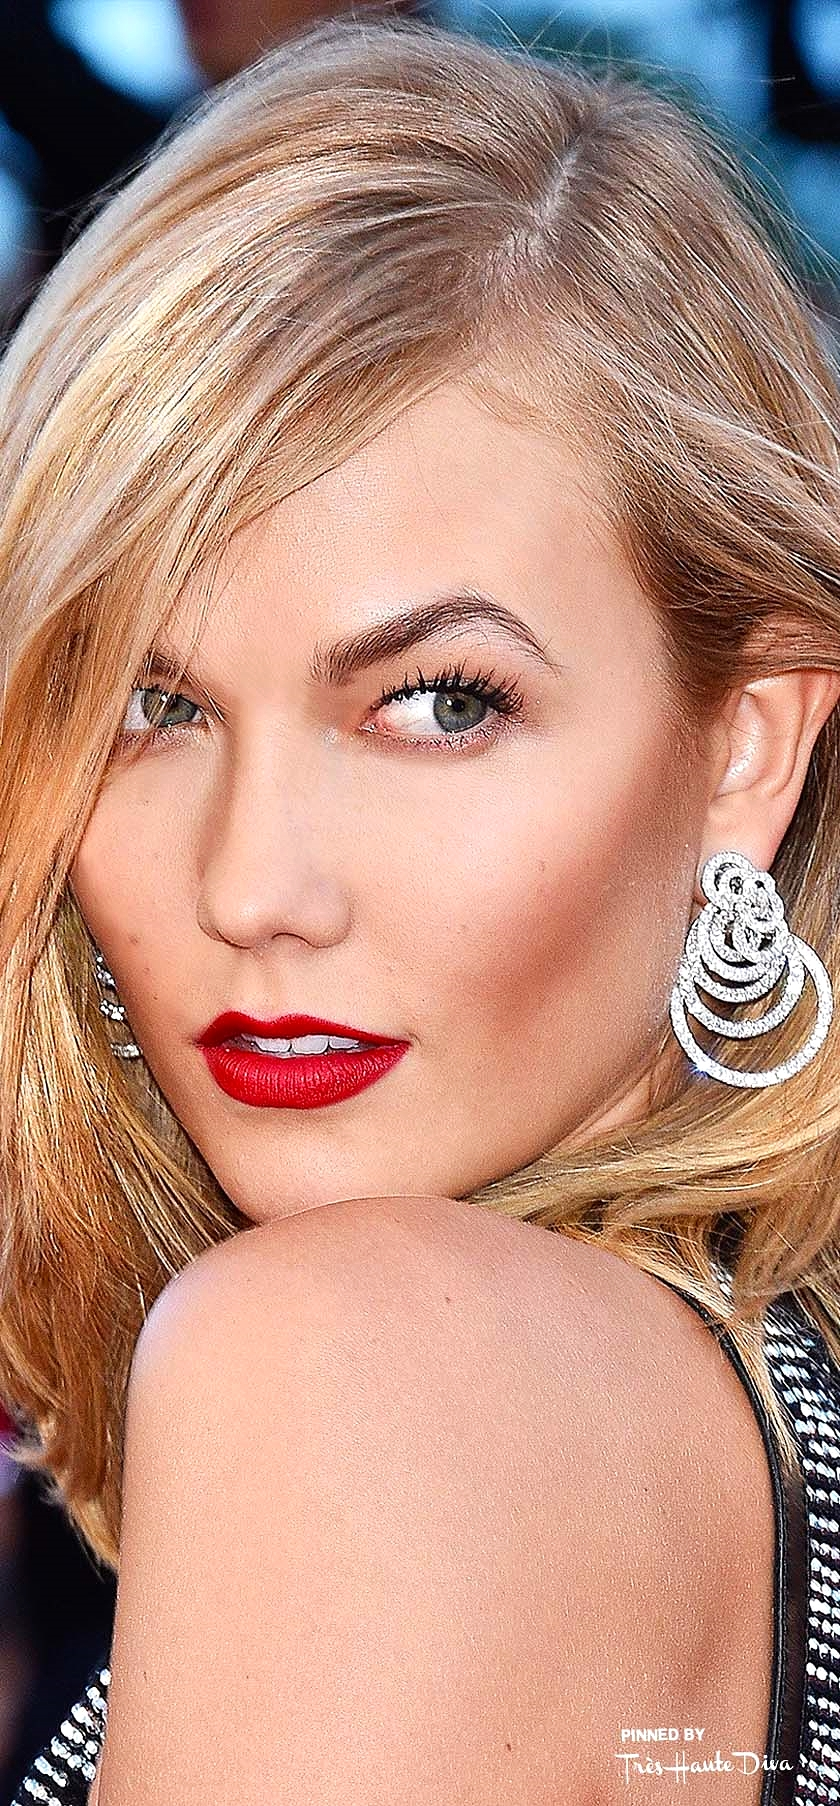 Karlie Kloss                  Photo by Getty